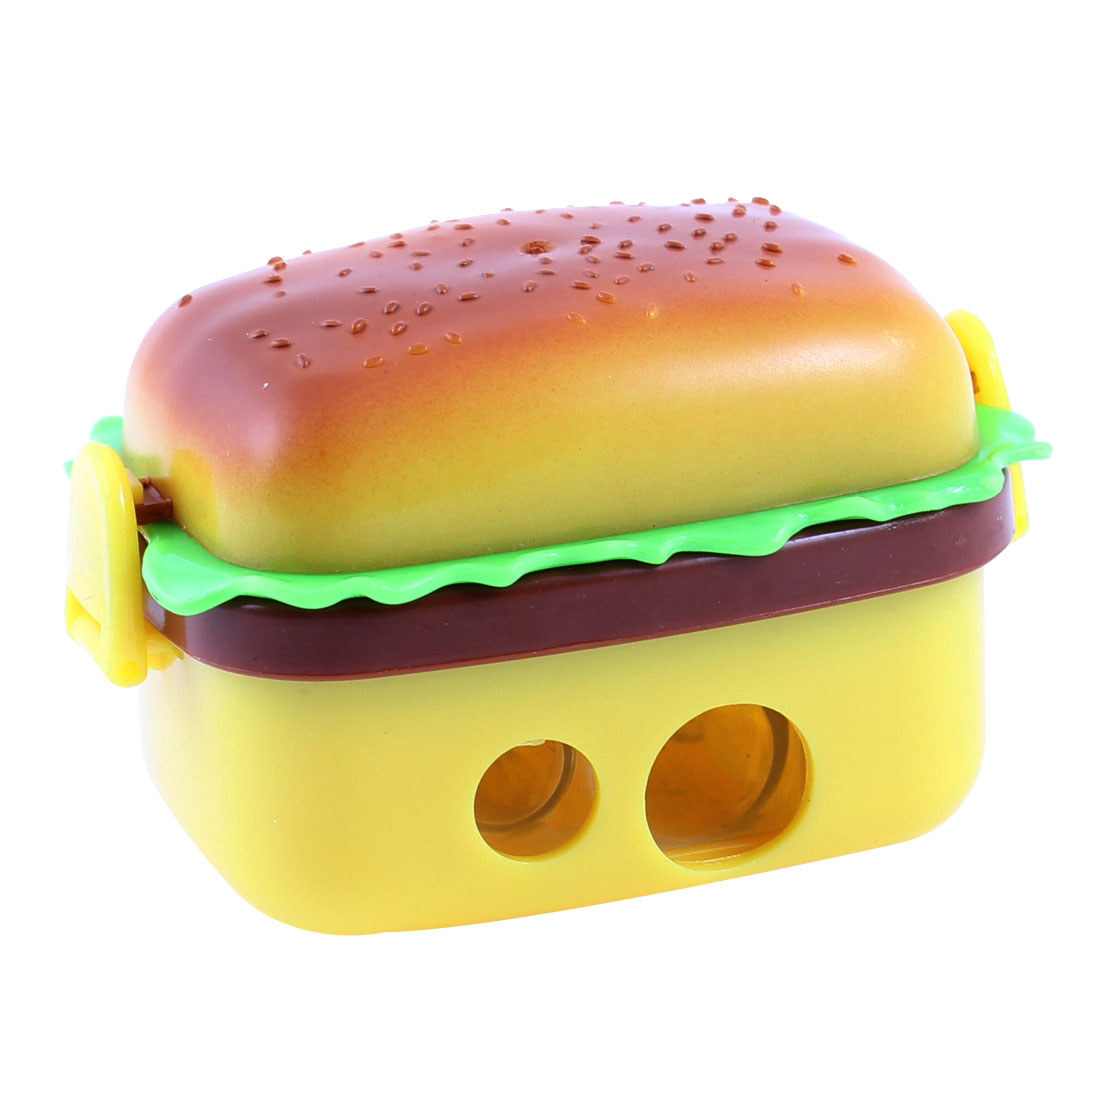 Double Holes Hamburger Shaped Protable Pencil Sharpener Yellow Brown w Erasers